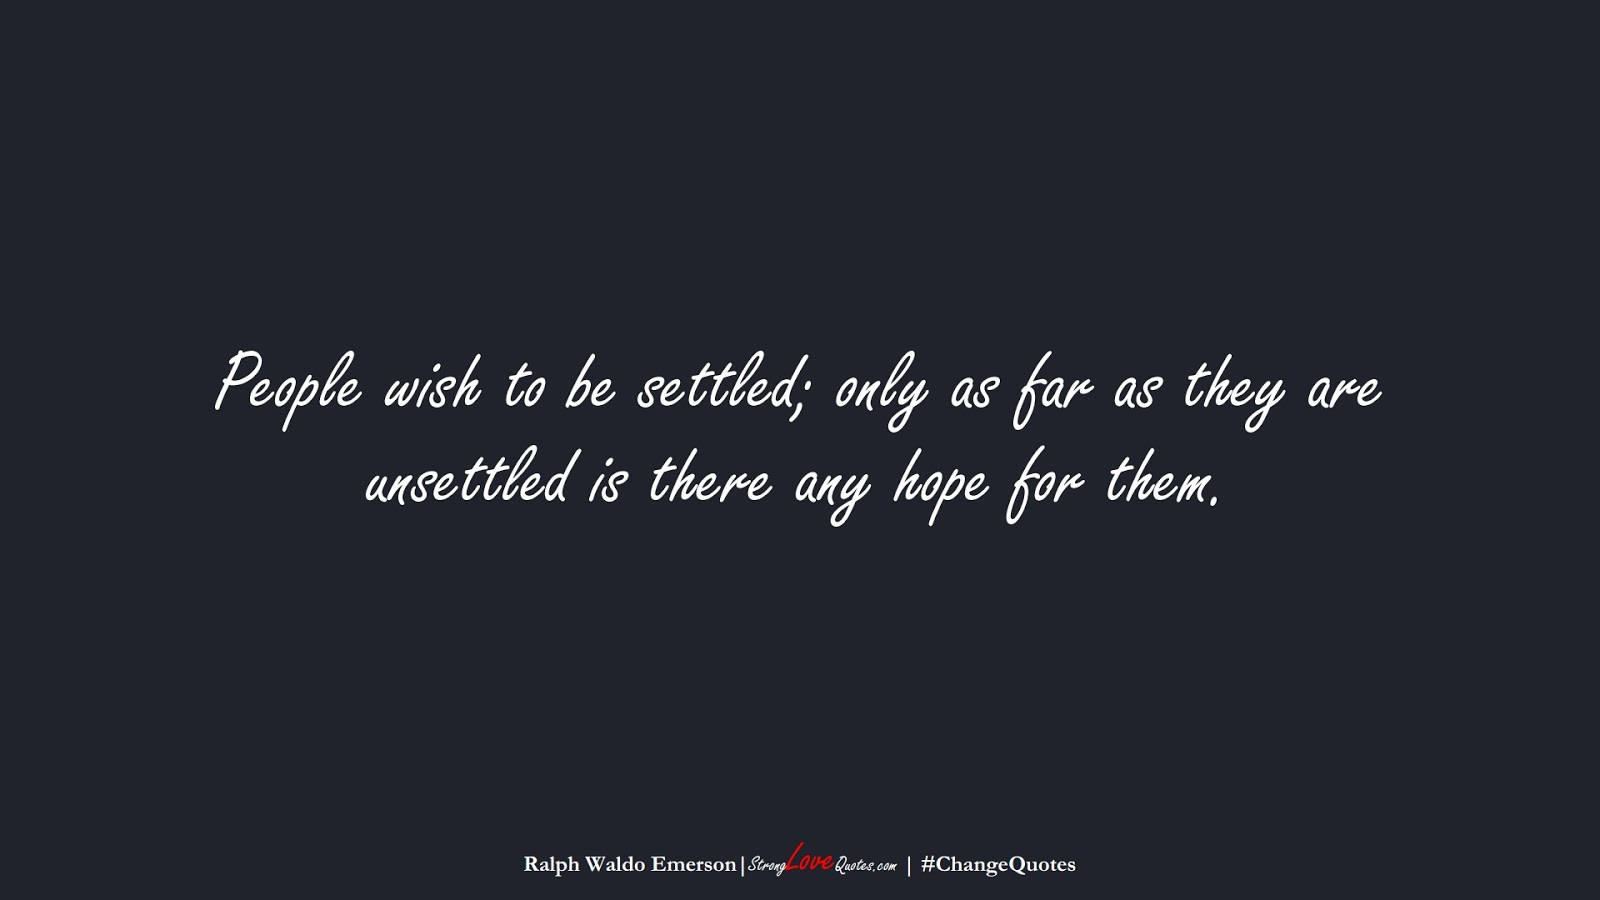 People wish to be settled; only as far as they are unsettled is there any hope for them. (Ralph Waldo Emerson);  #ChangeQuotes